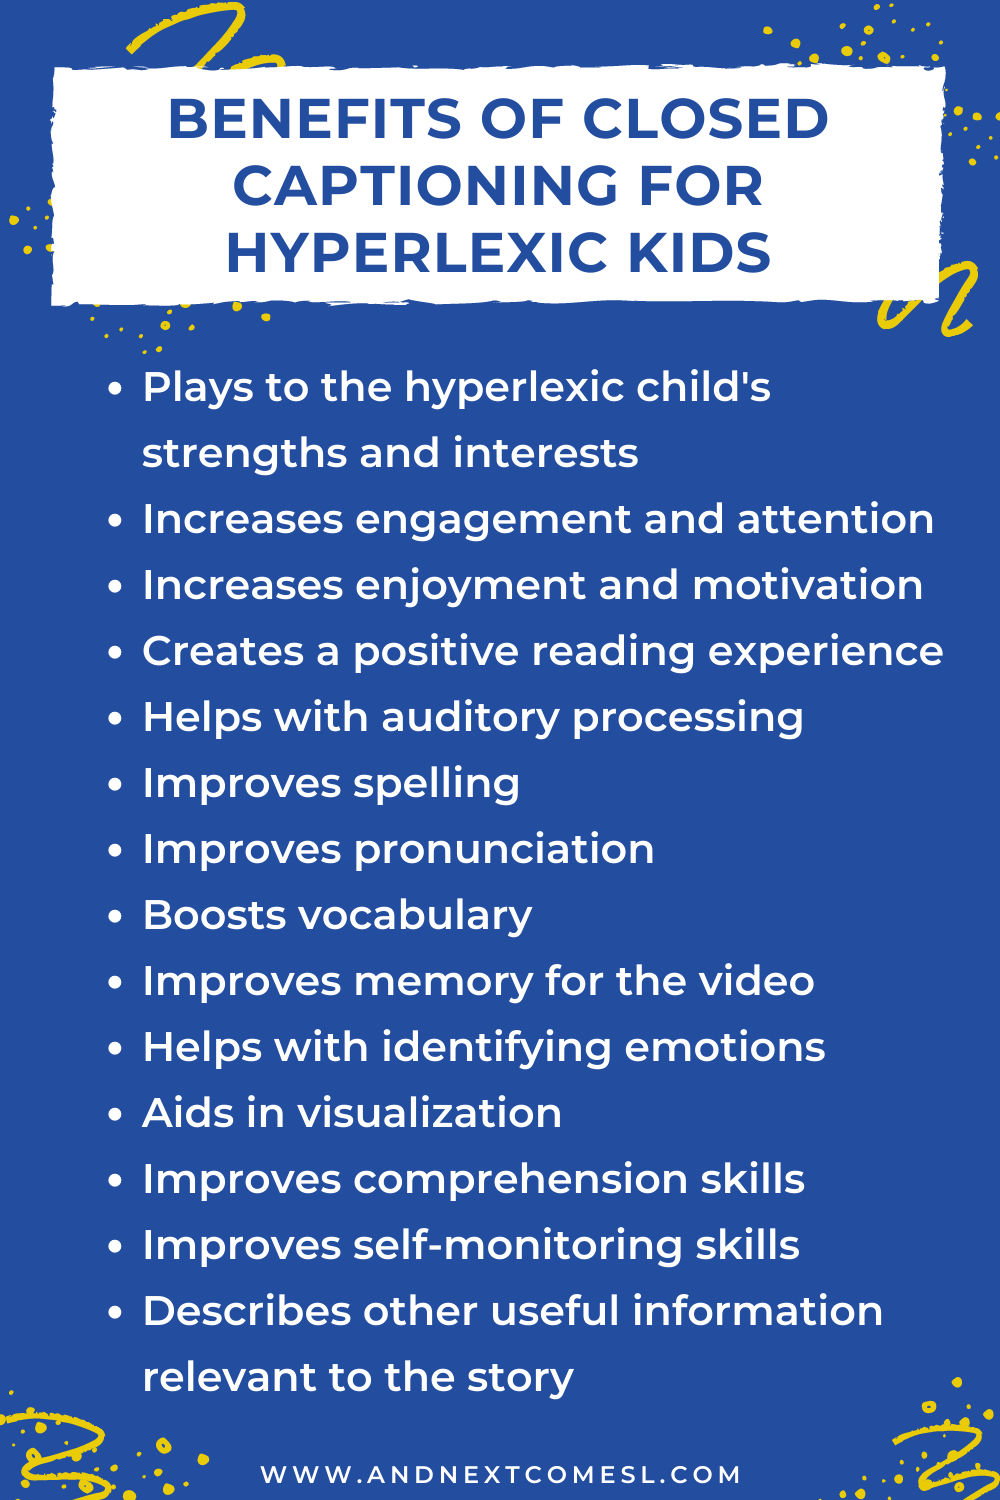 A list of the benefits of closed captioning and reading subtitles for hyperlexic kids